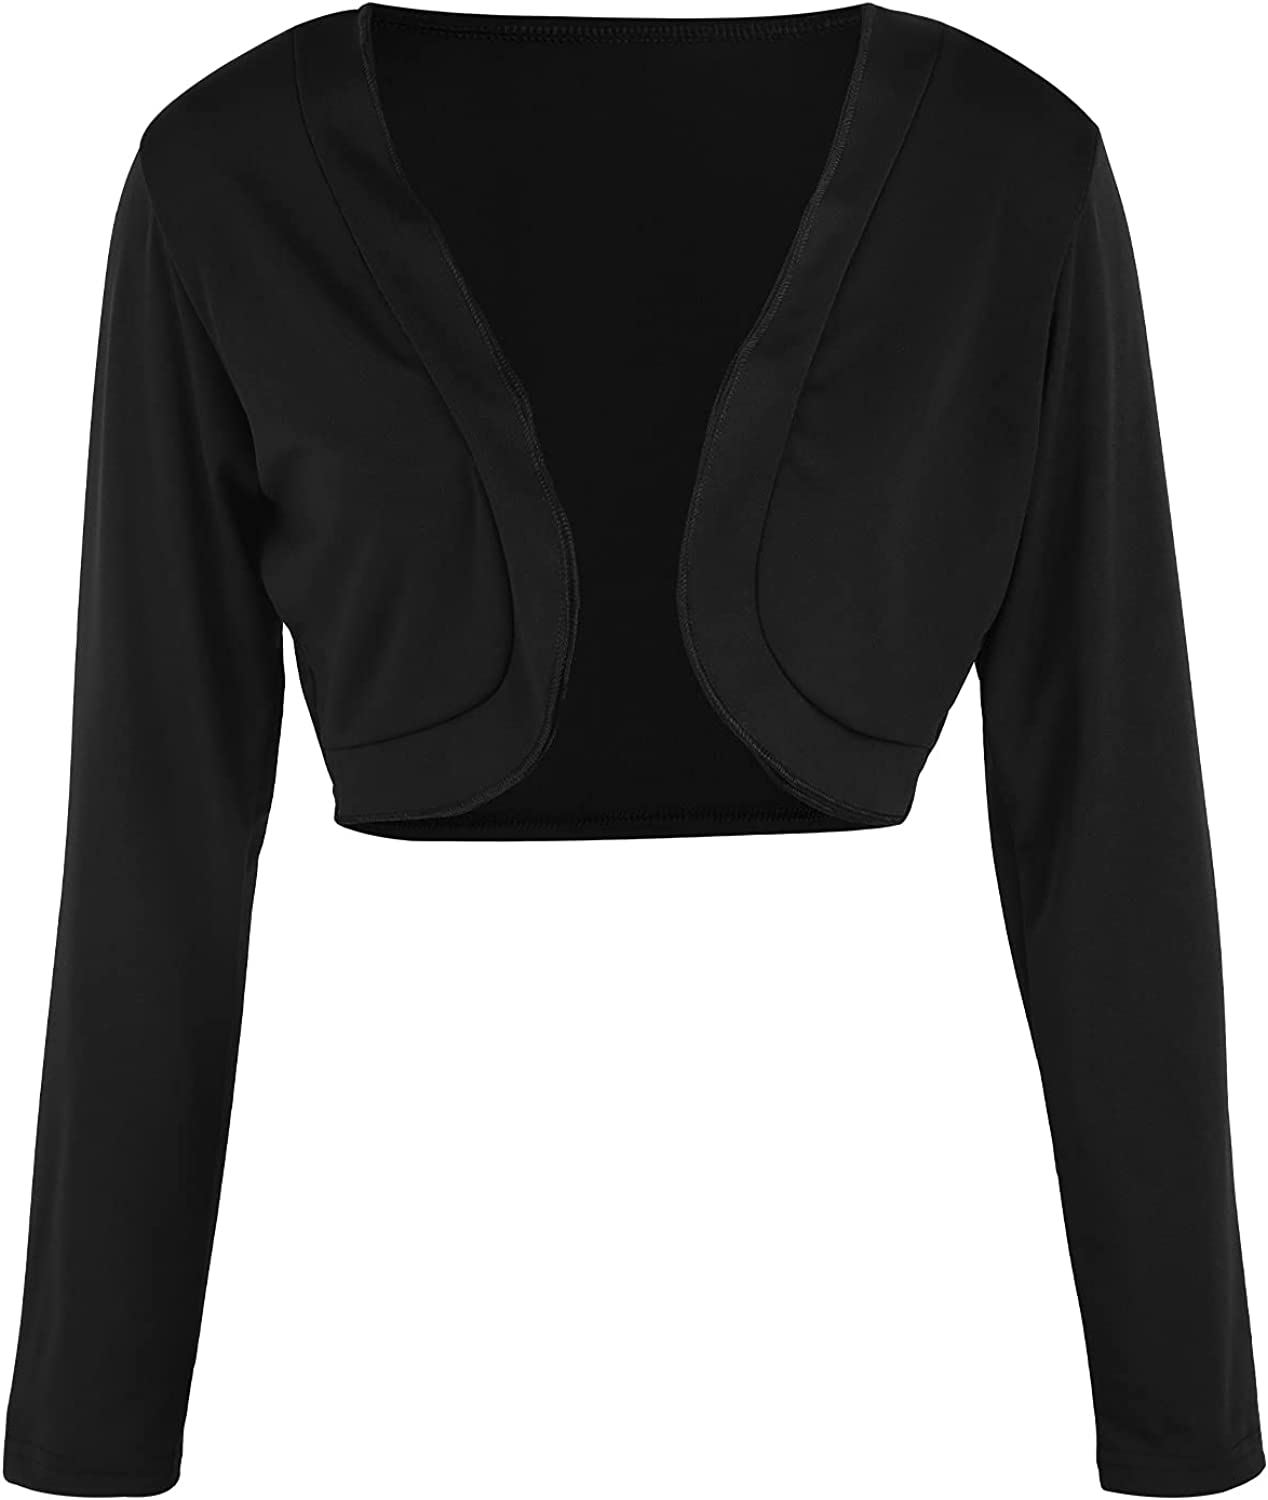 Women's Long Sleeve Shrug Open Front Cropped Cardigan Sweater Solid Color Vintage Shrug Bolero Cape for Dresses